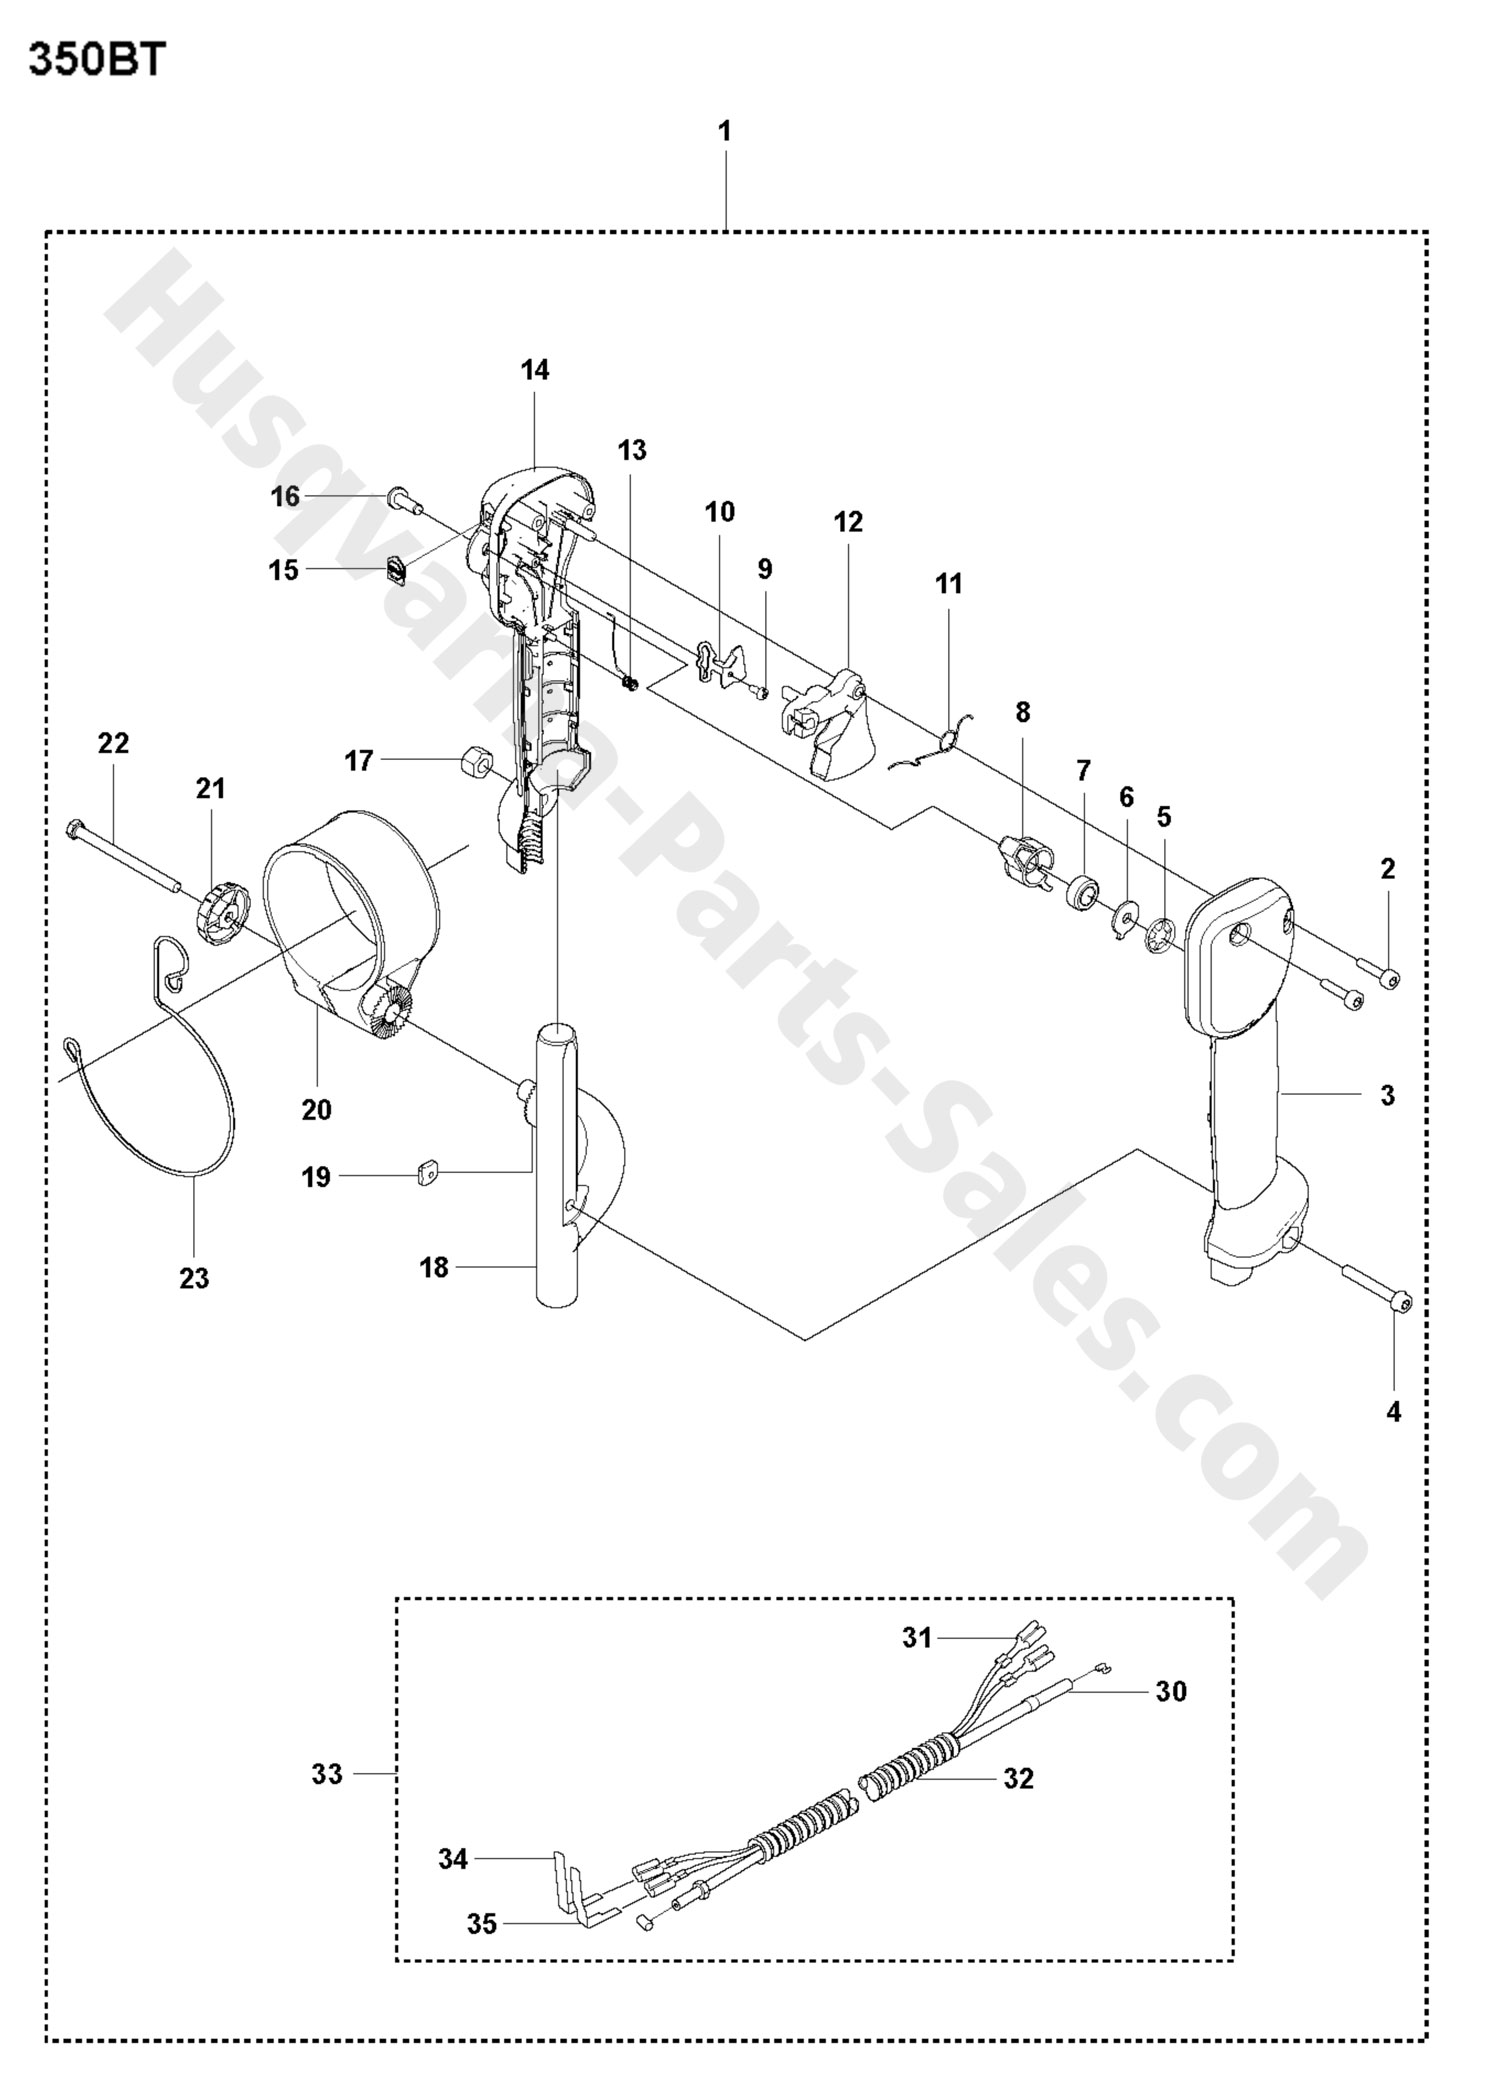 hight resolution of husqvarna bt150 parts diagrams wiring diagrams u2022 rh 18 eap ing de husqvarna leaf blower 125bvx parts husqvarna leaf blower